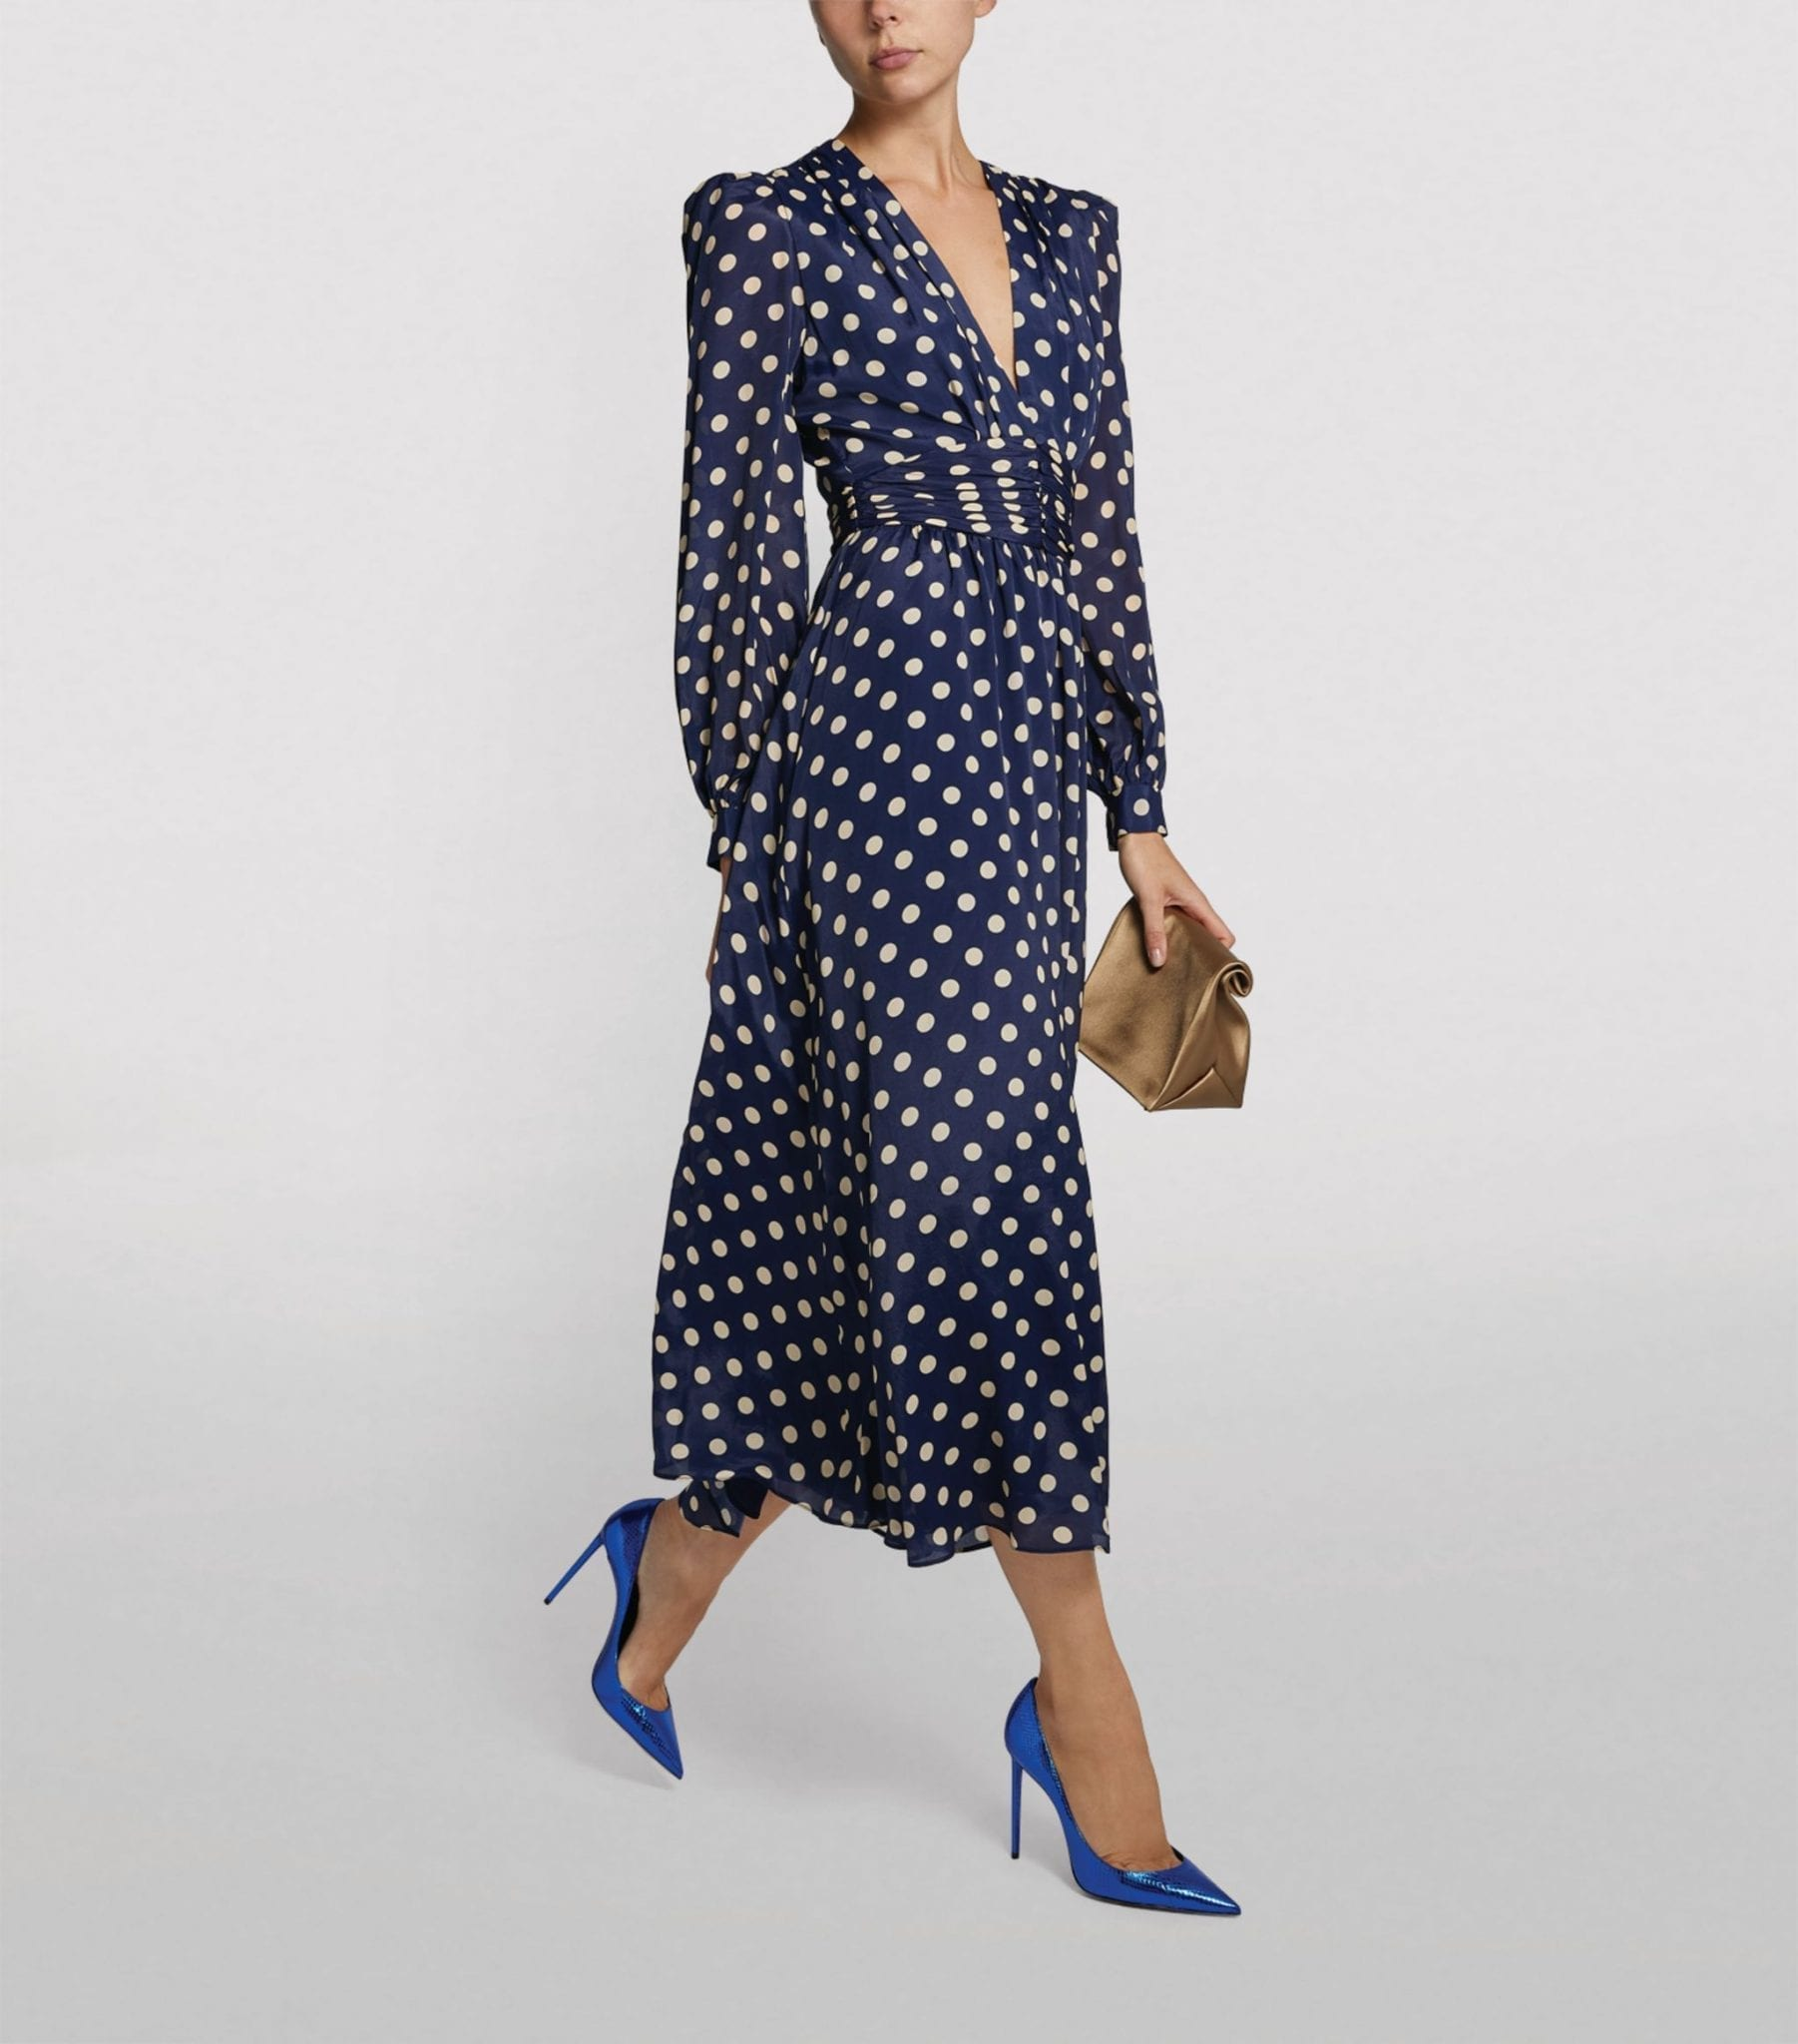 RONNY KOBO Polka-Dot Maria Midi Dress